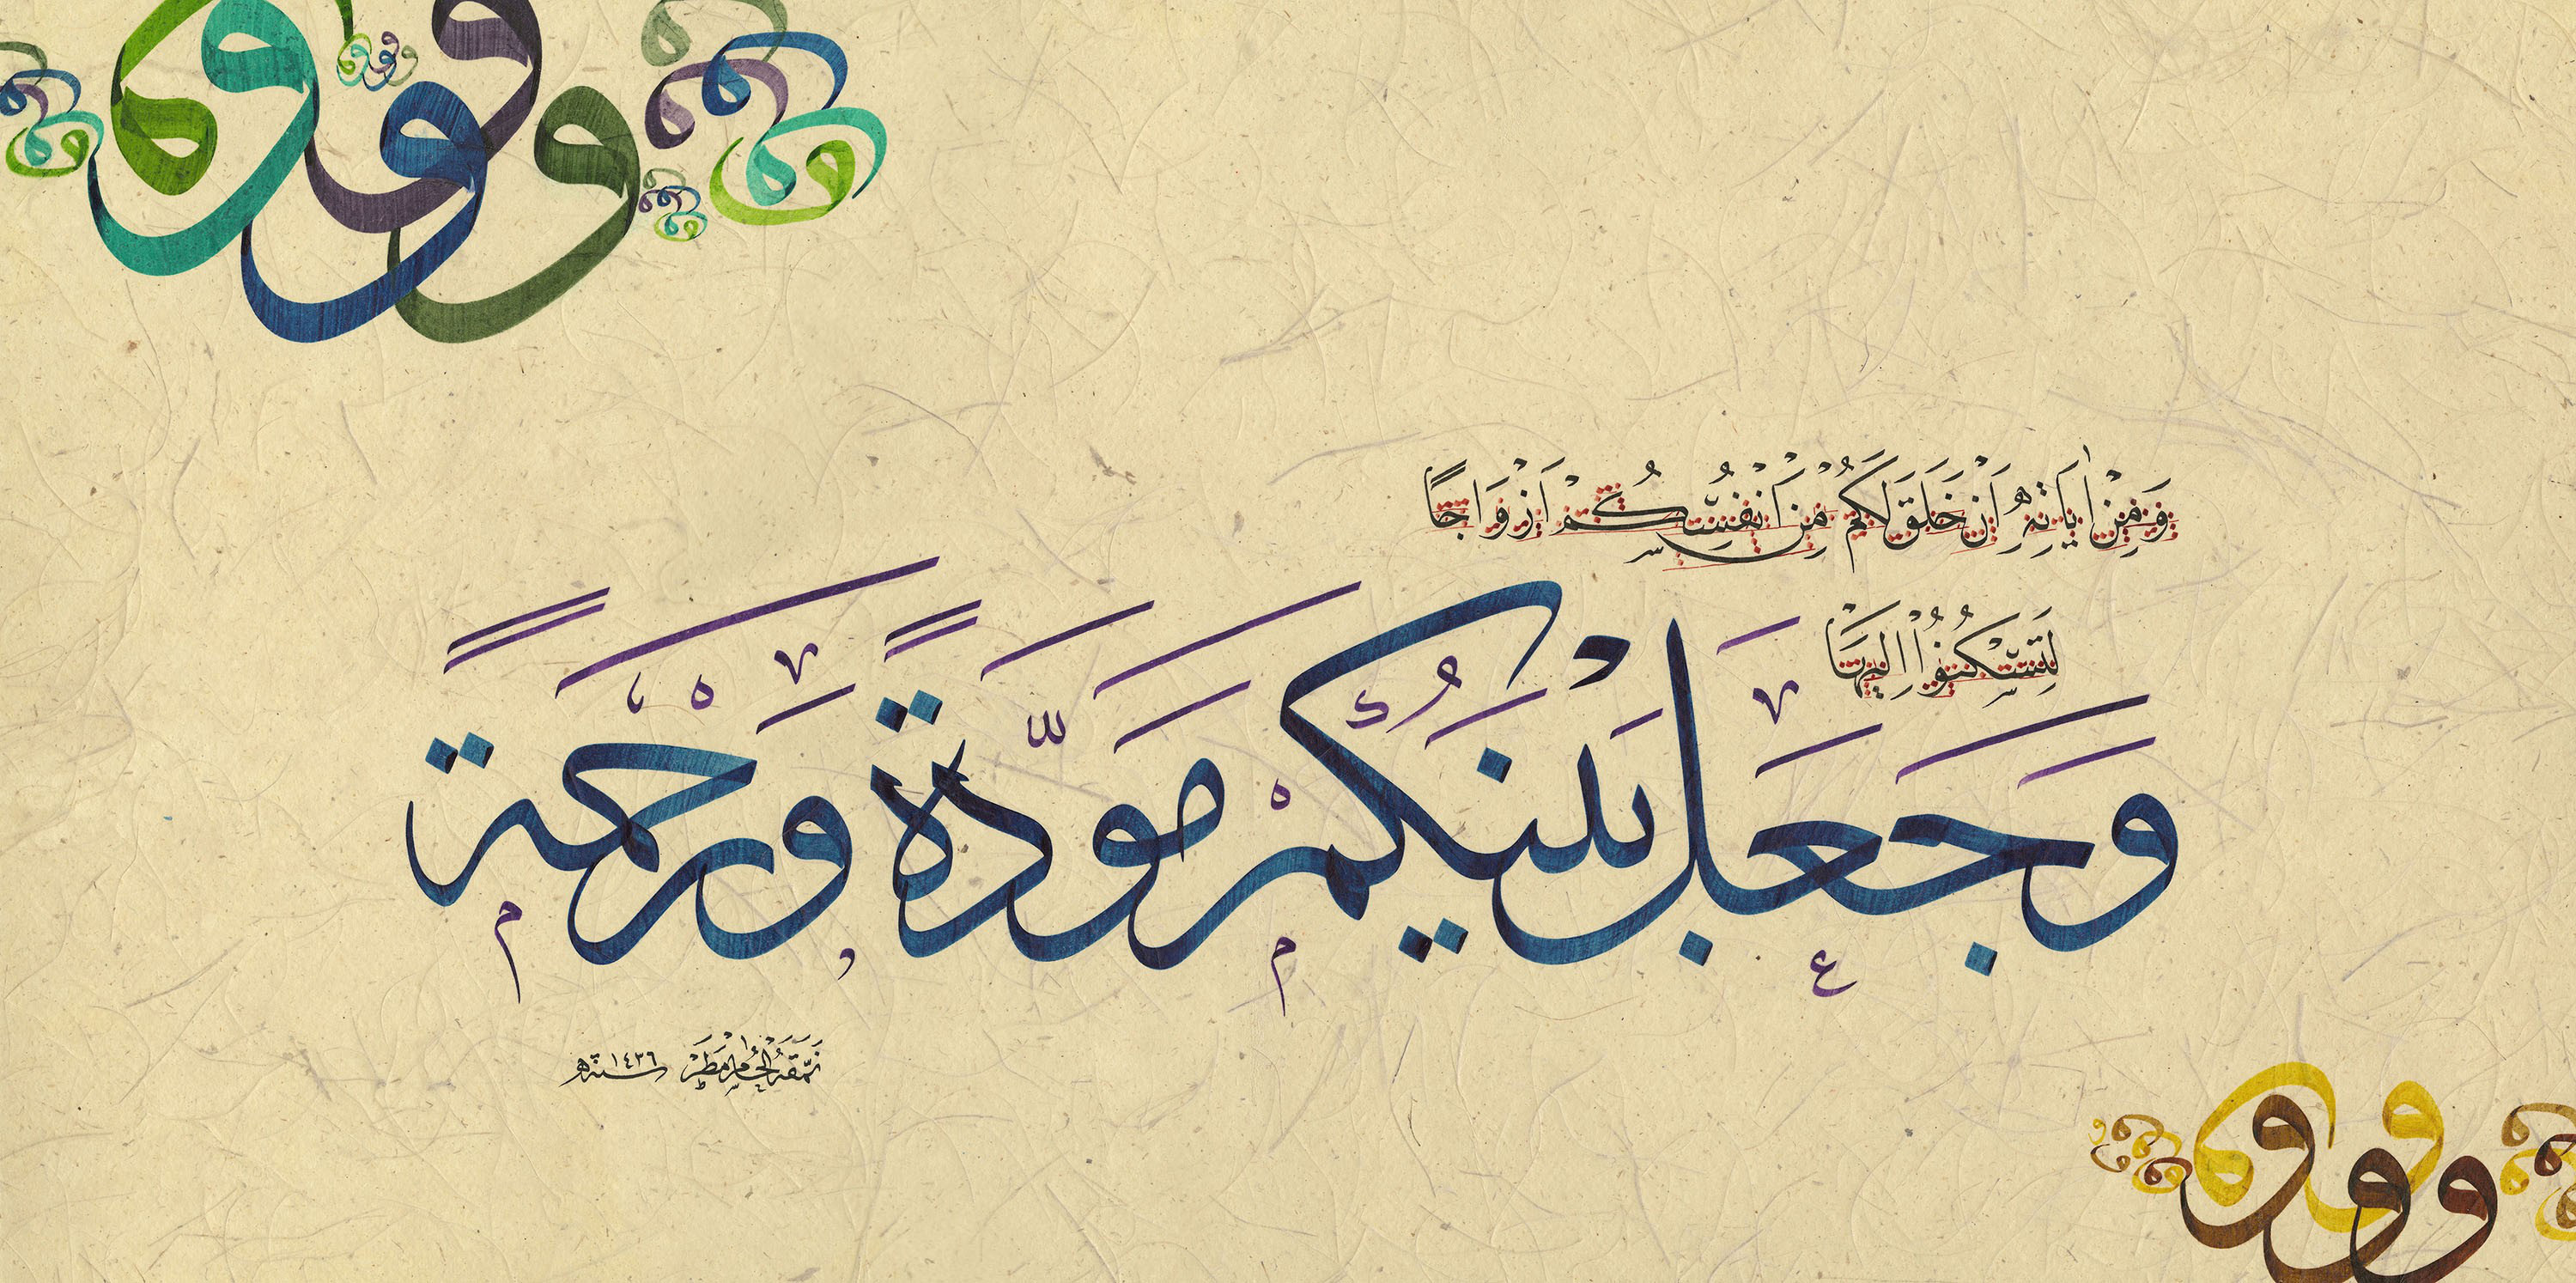 Arabic calligraphy in Arabic